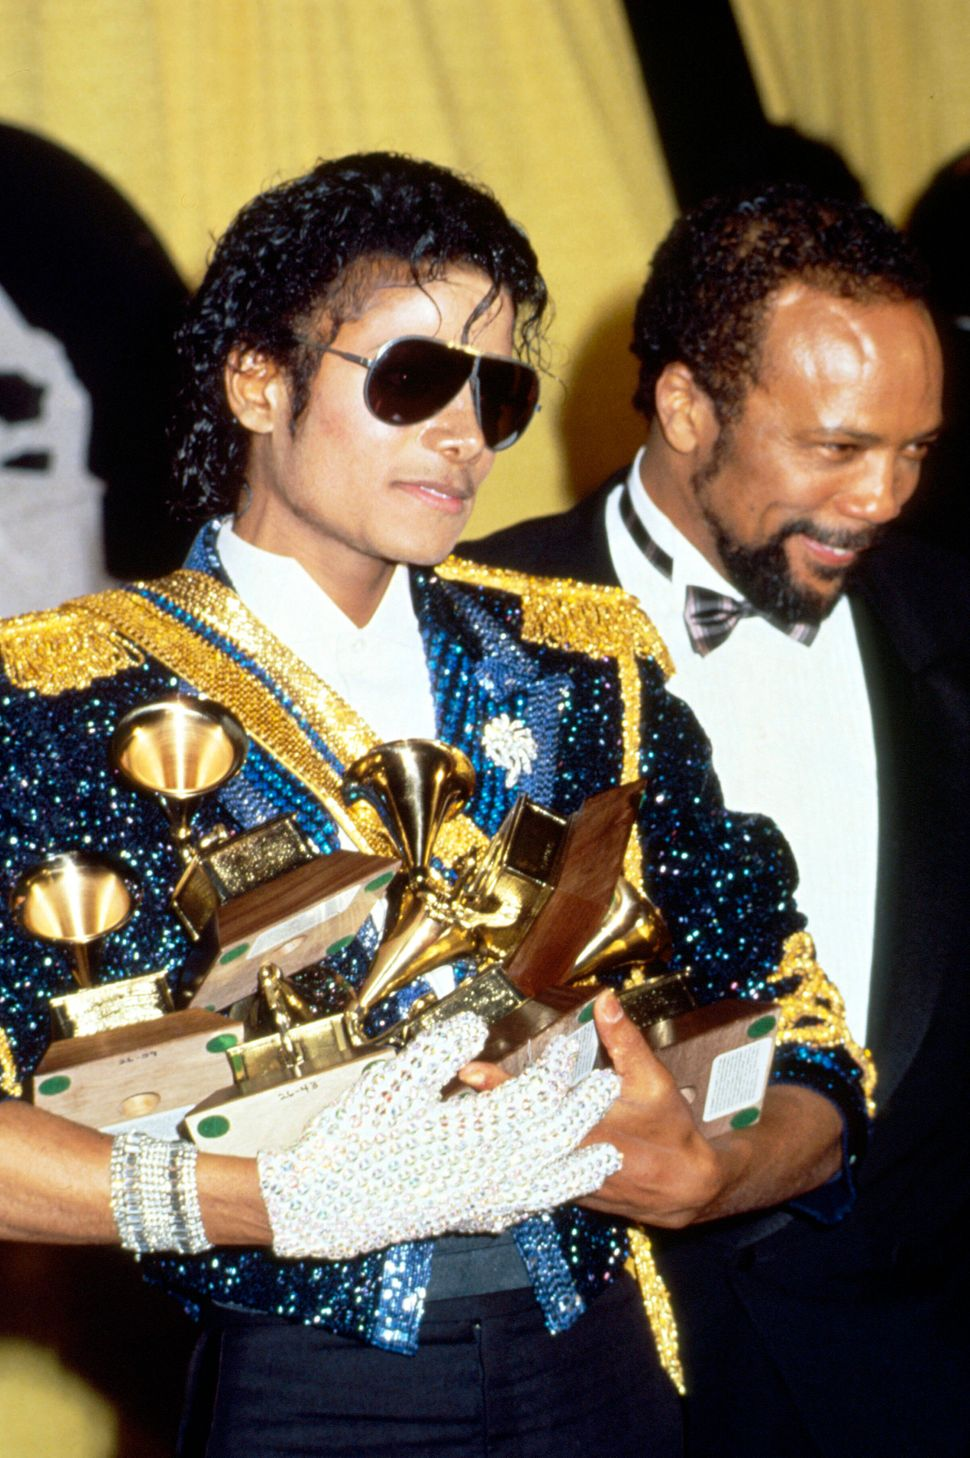 Jackson with Quincy Jones at the 1984 Grammy Awards